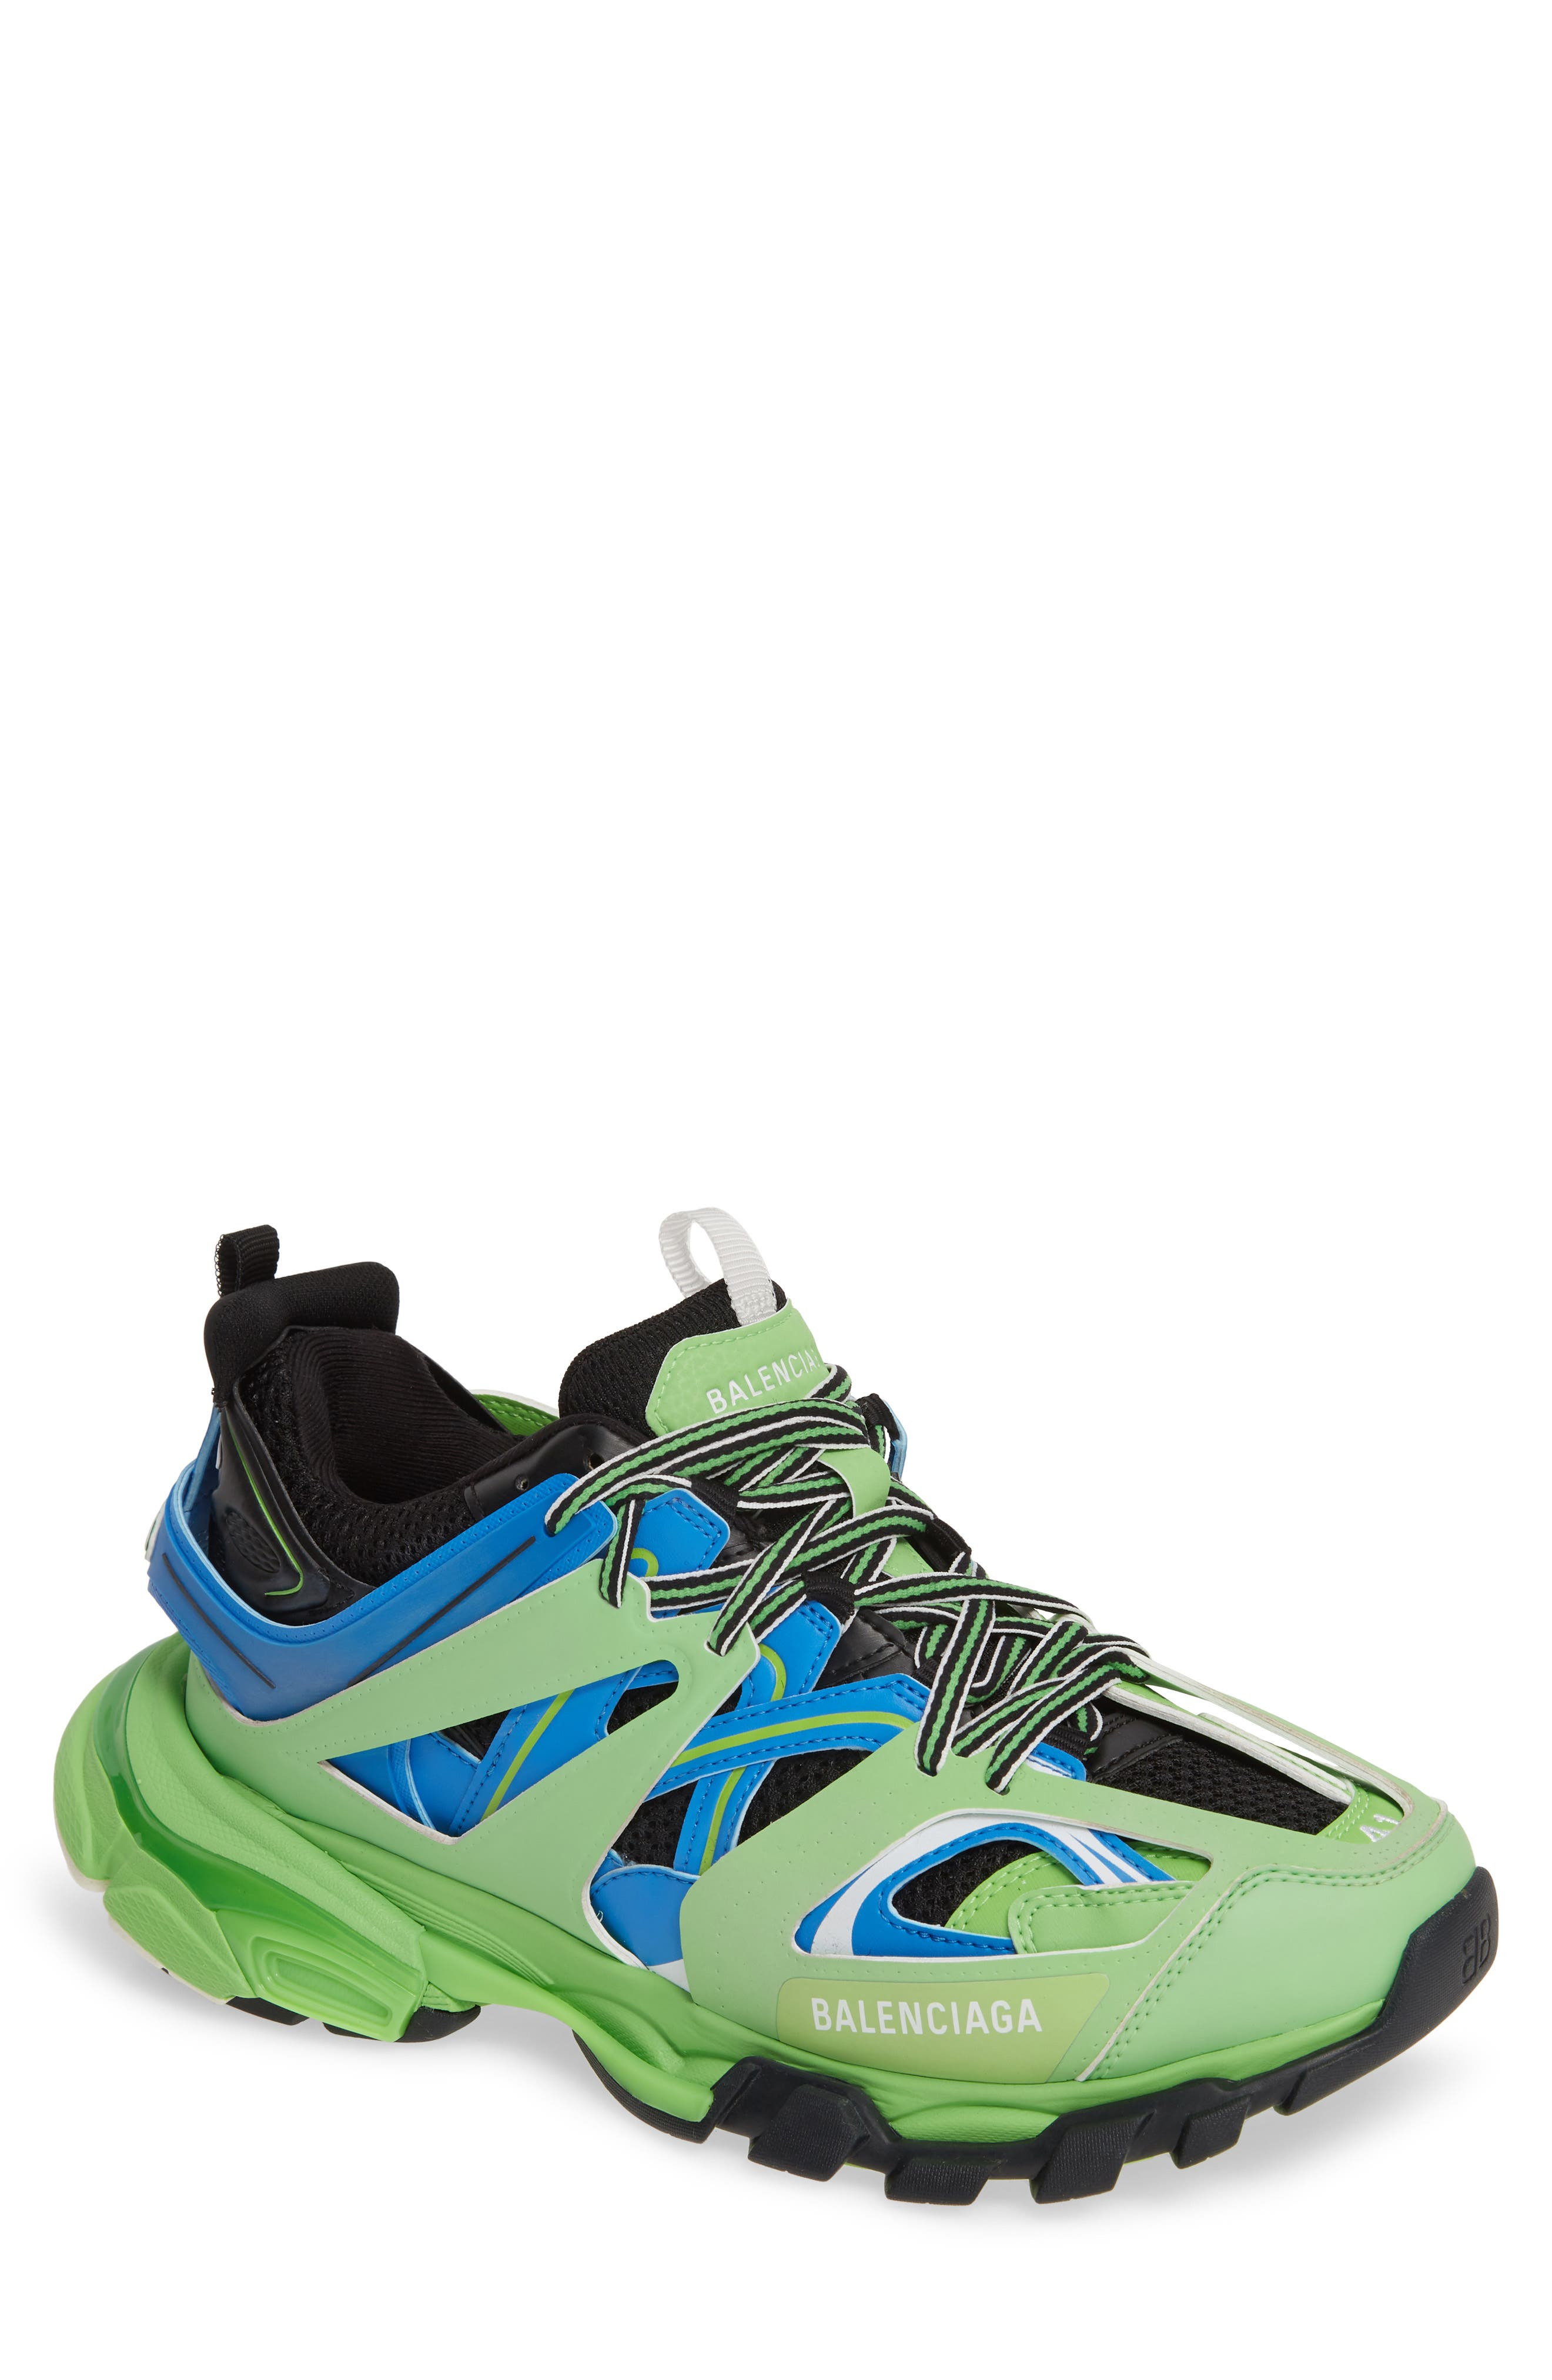 BALENCIAGA, Track Sneaker, Main thumbnail 1, color, 4078 BLUE/ GREEN